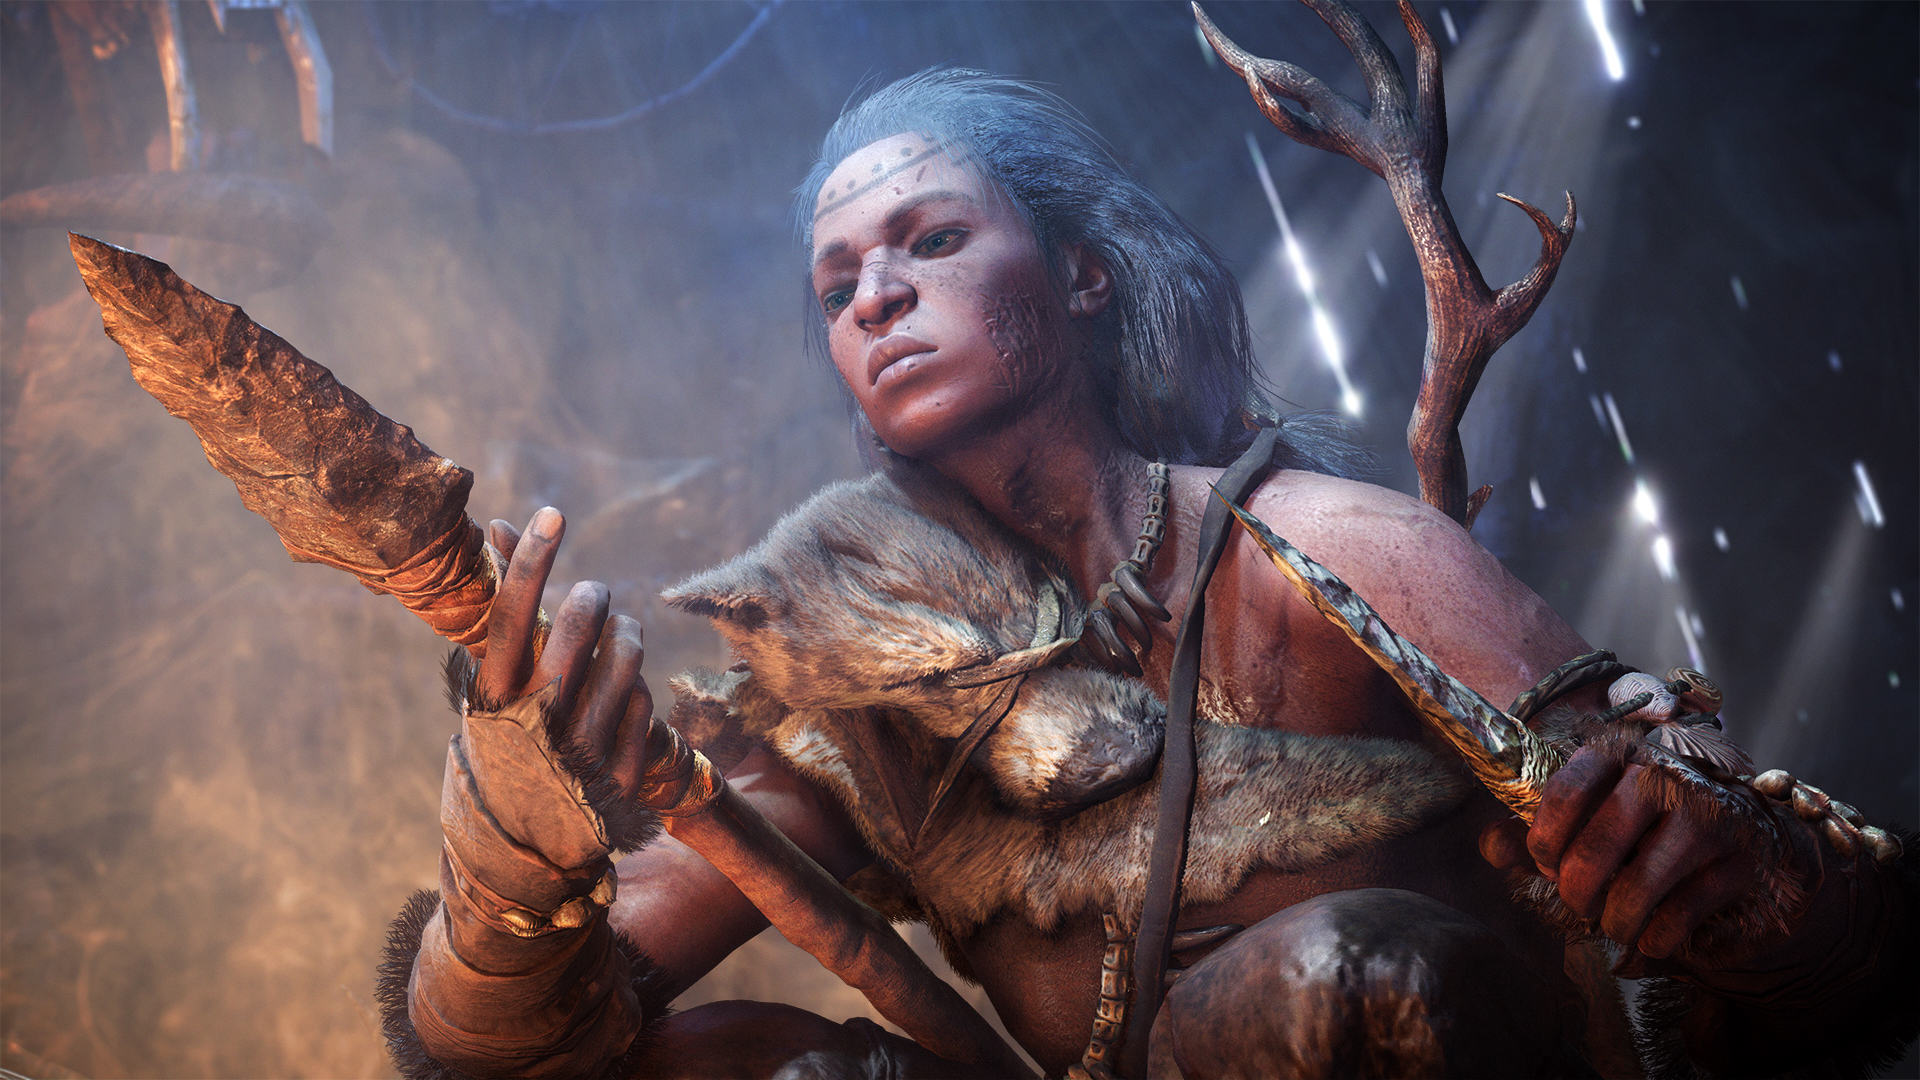 FCP 01  Hunter  Screenshots PREVIEW PR 160126 6pm CET 1453716676 Far Cry Primal Is Shameless Pre Historic Fun, If A Little Shallow